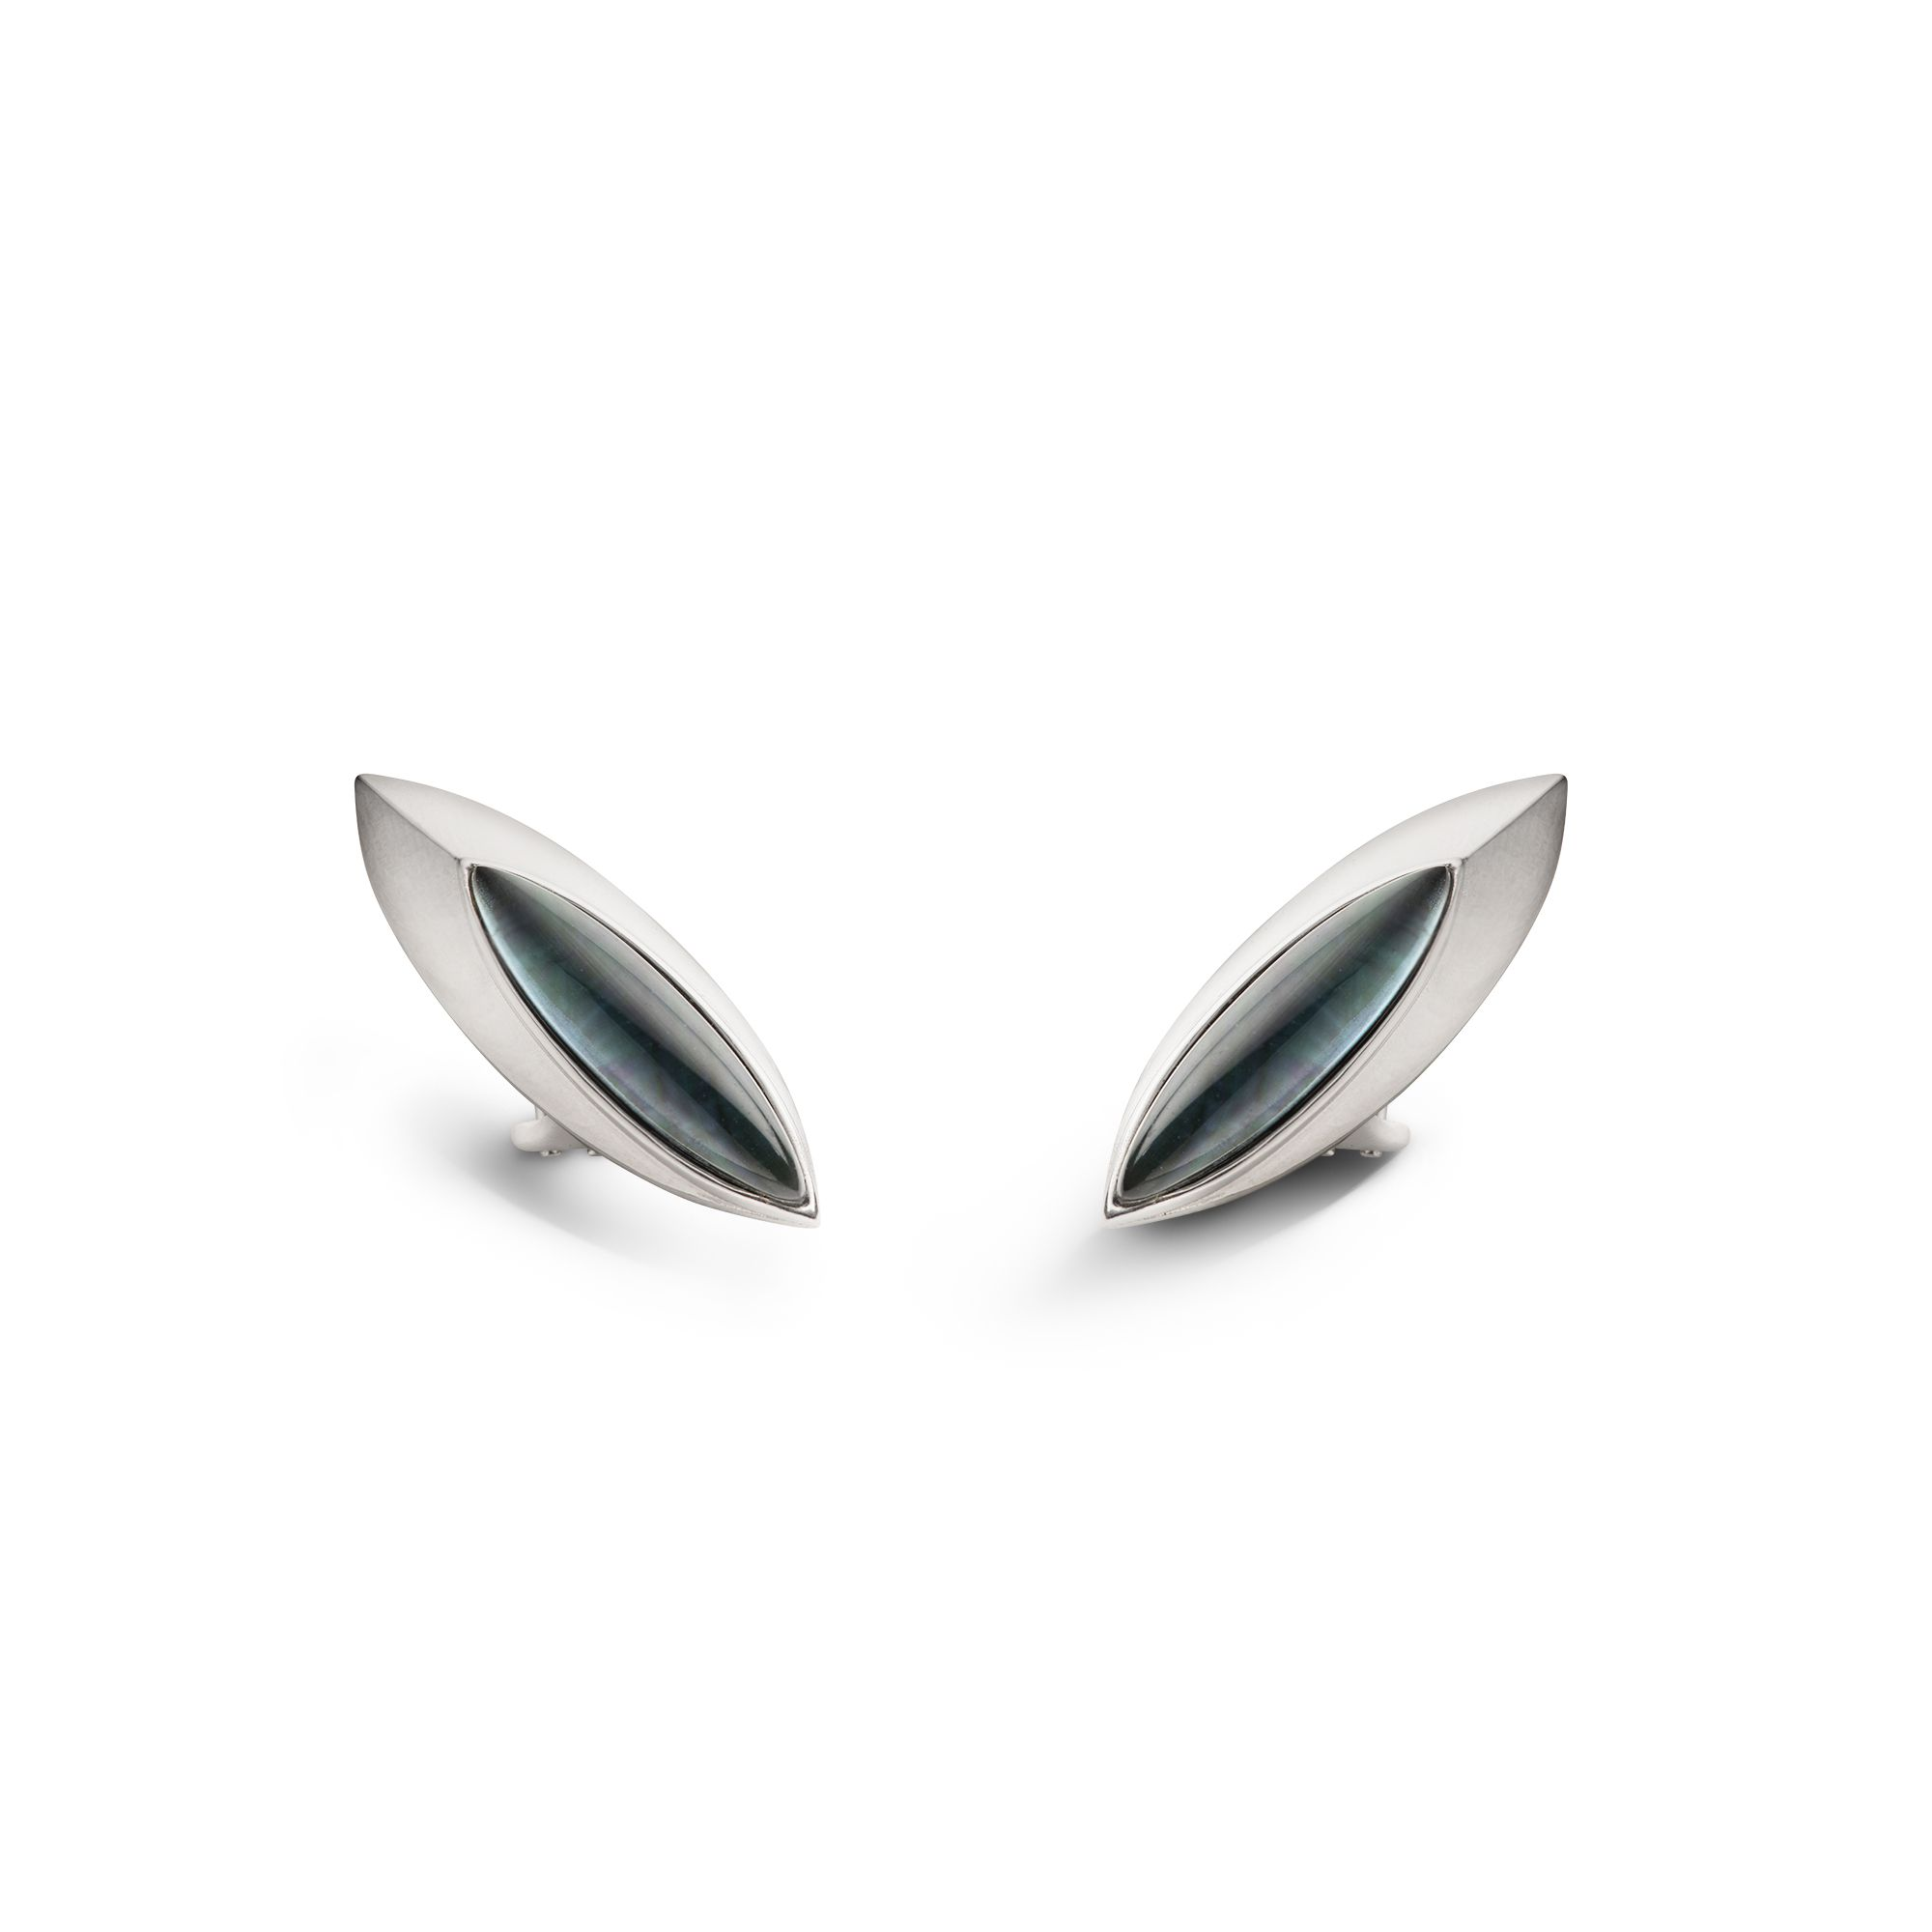 Shield 'Navetta' earrings  Silver earrings with stone